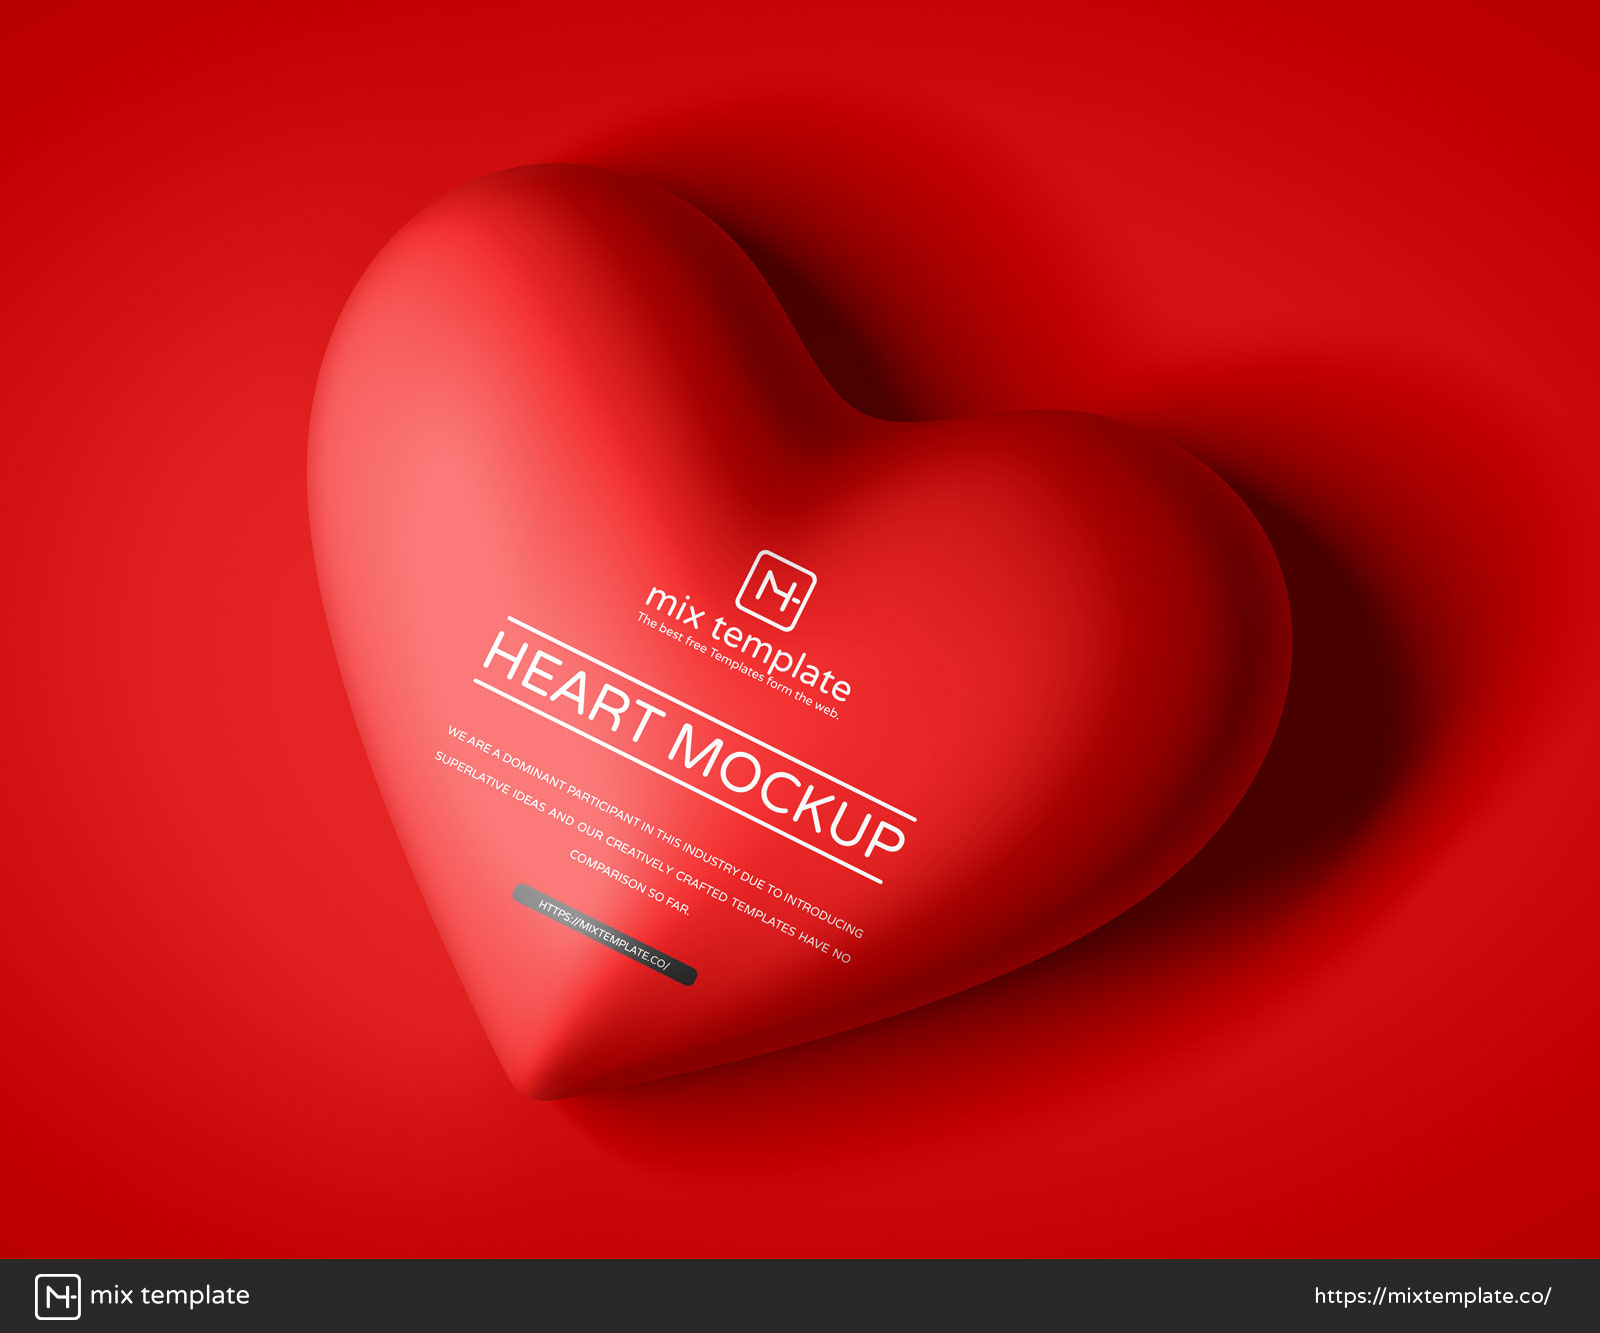 Free-Top-View-Heart-Mockup-Template-38